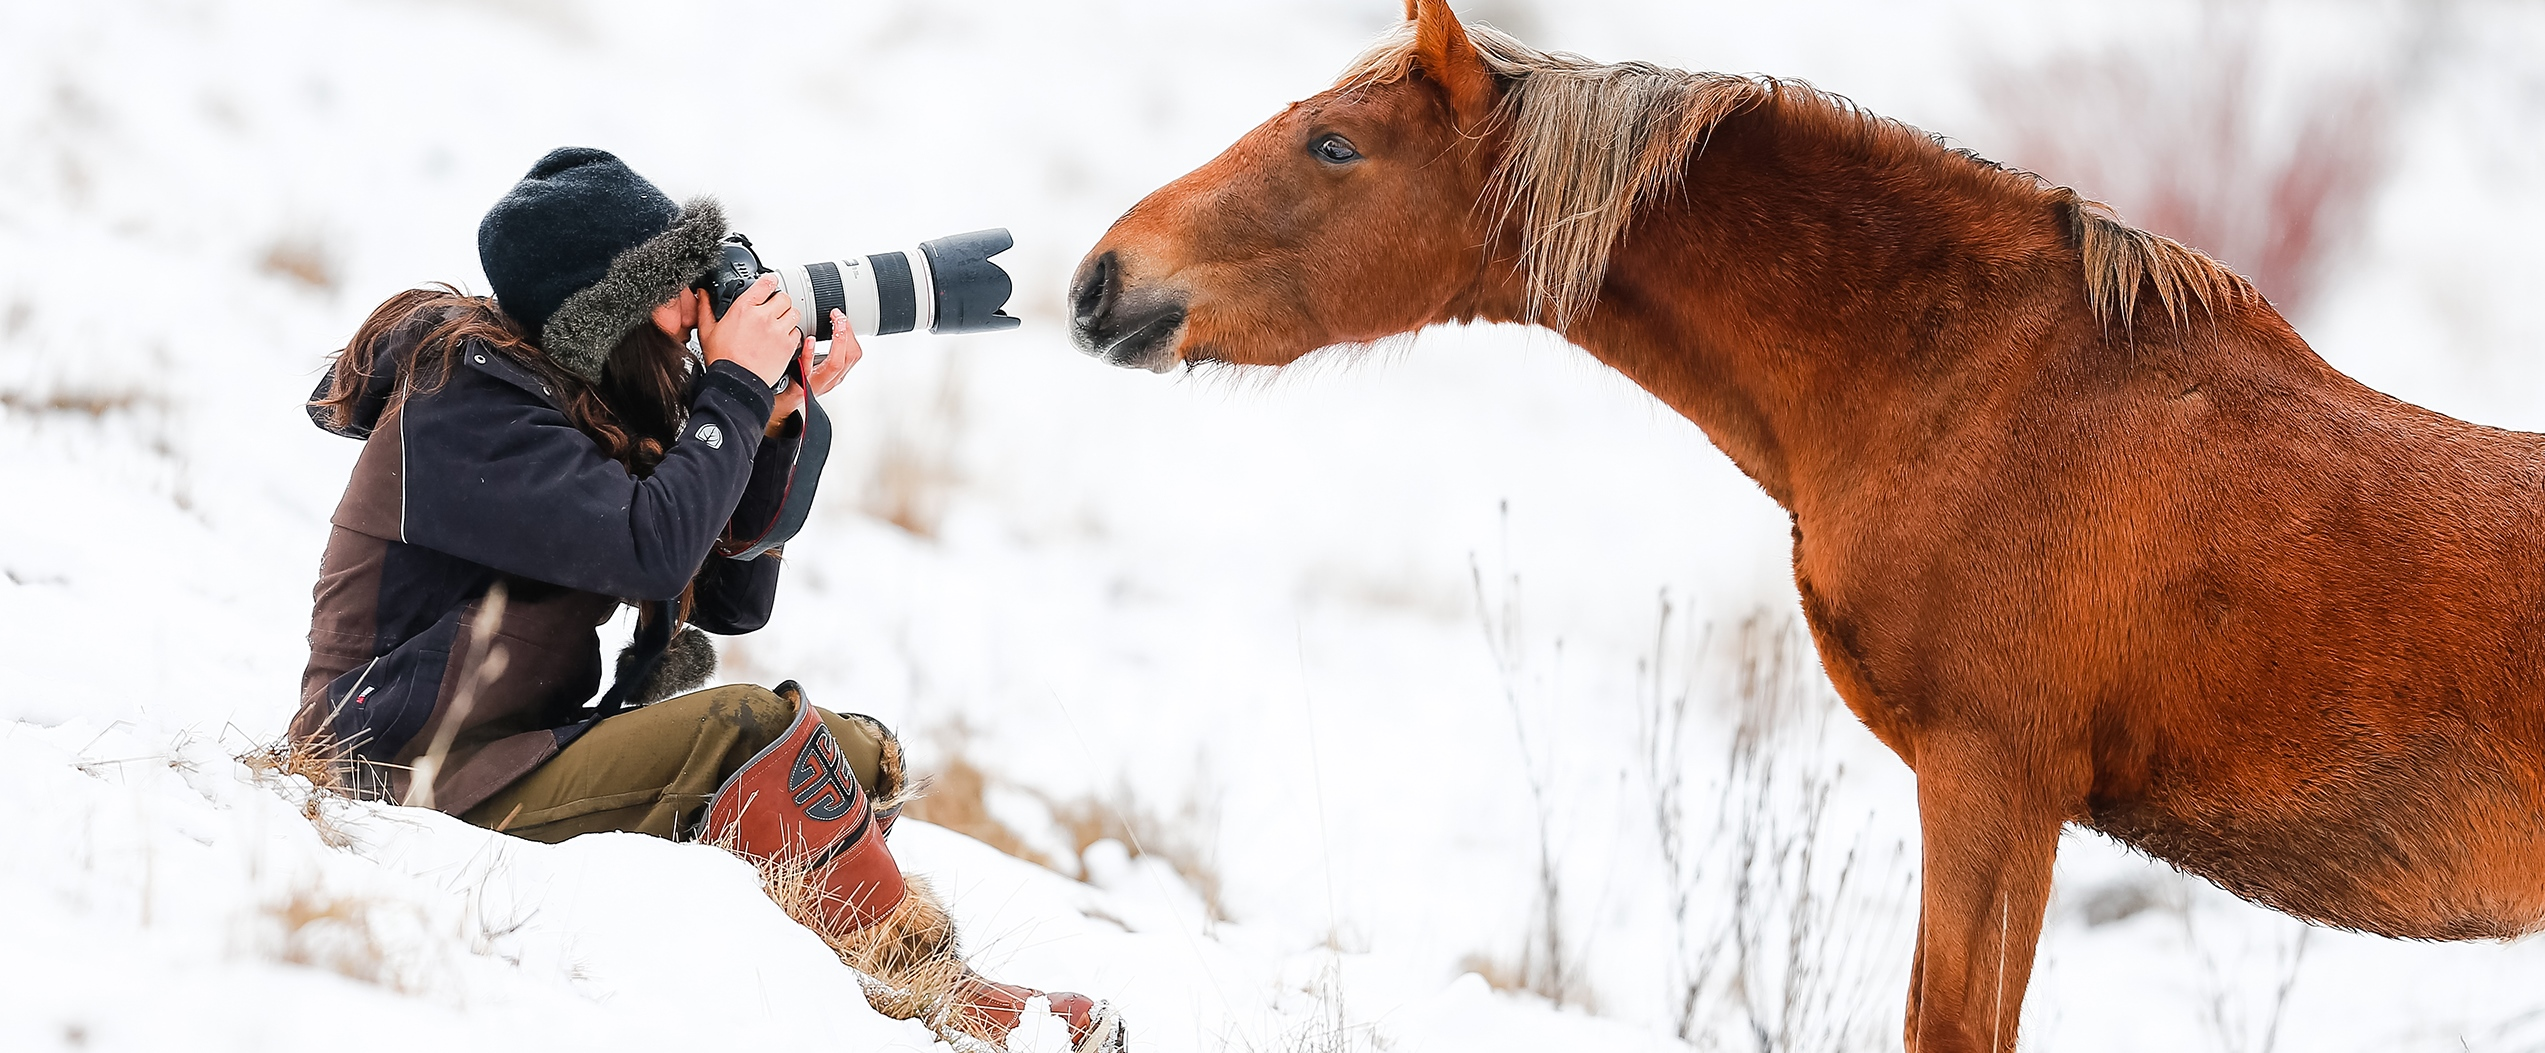 The Wild Colt who Loved Humans: Australian Snowy Mountains, Wild Horses of the World